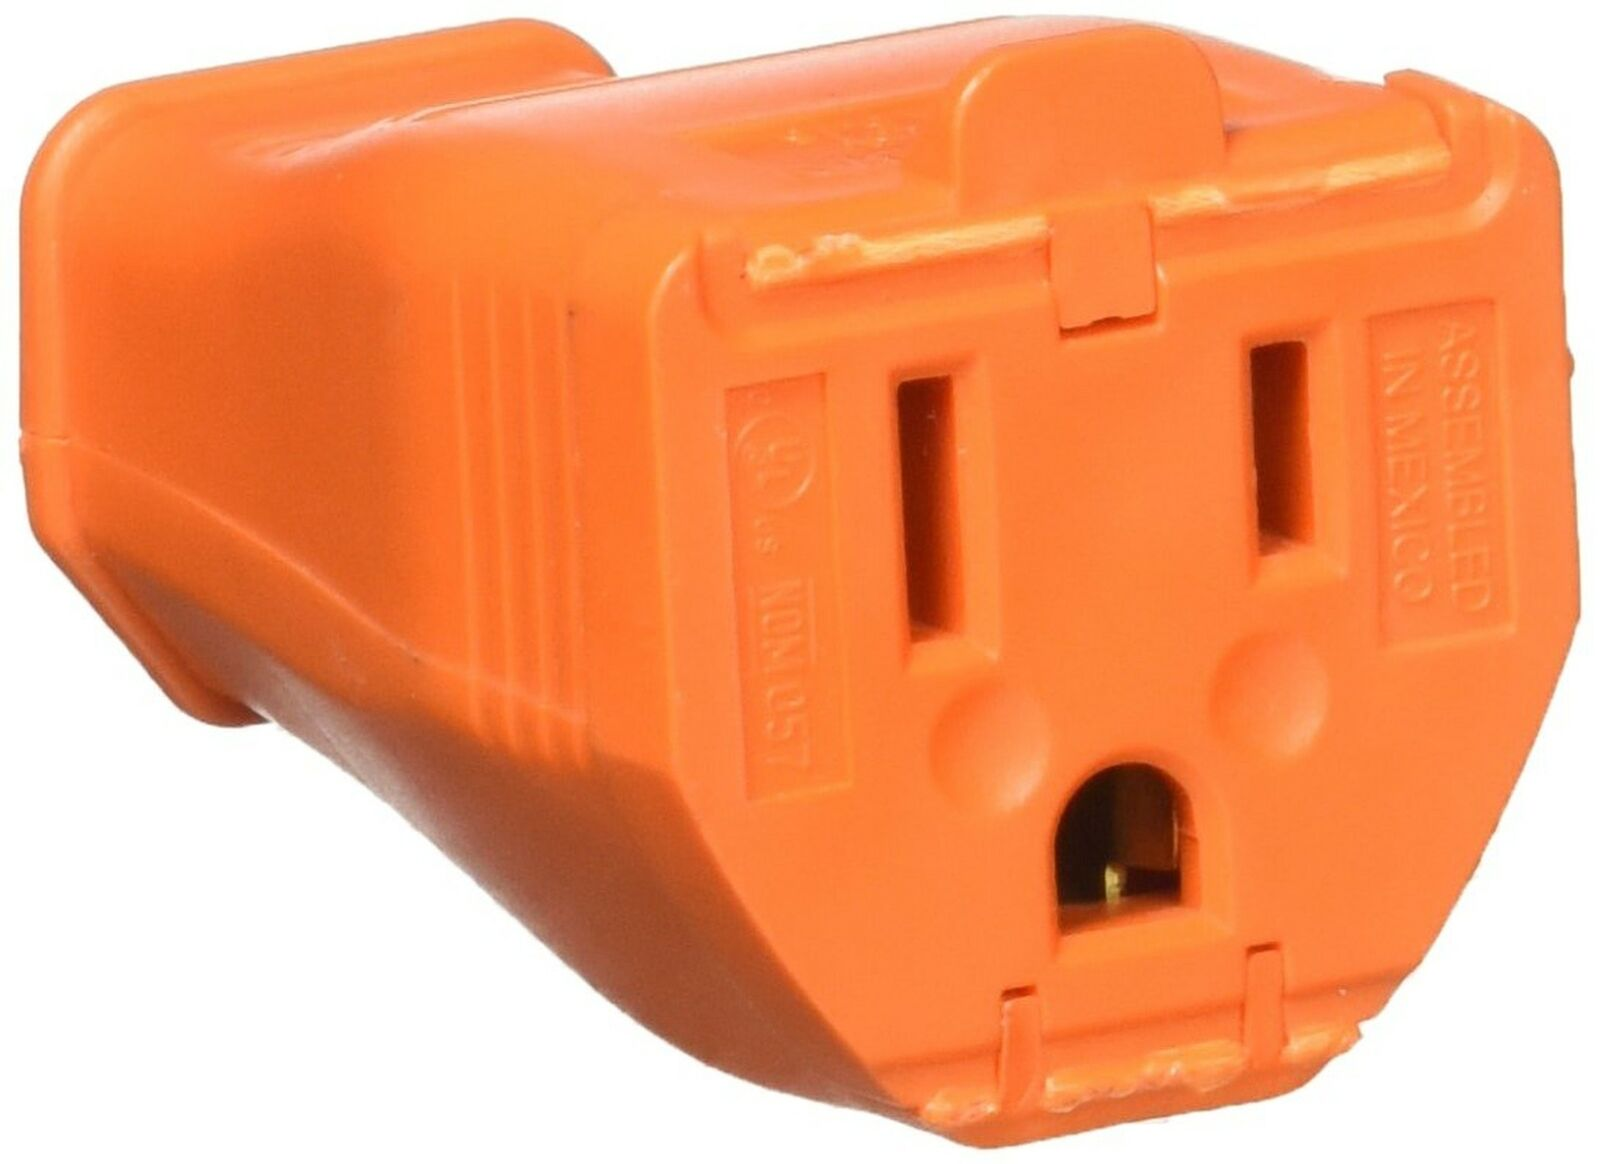 Leviton 003-3w102-0or 2 Pole 3 Wire Orange Grounding Cord Out,No 003-3W102-0OR